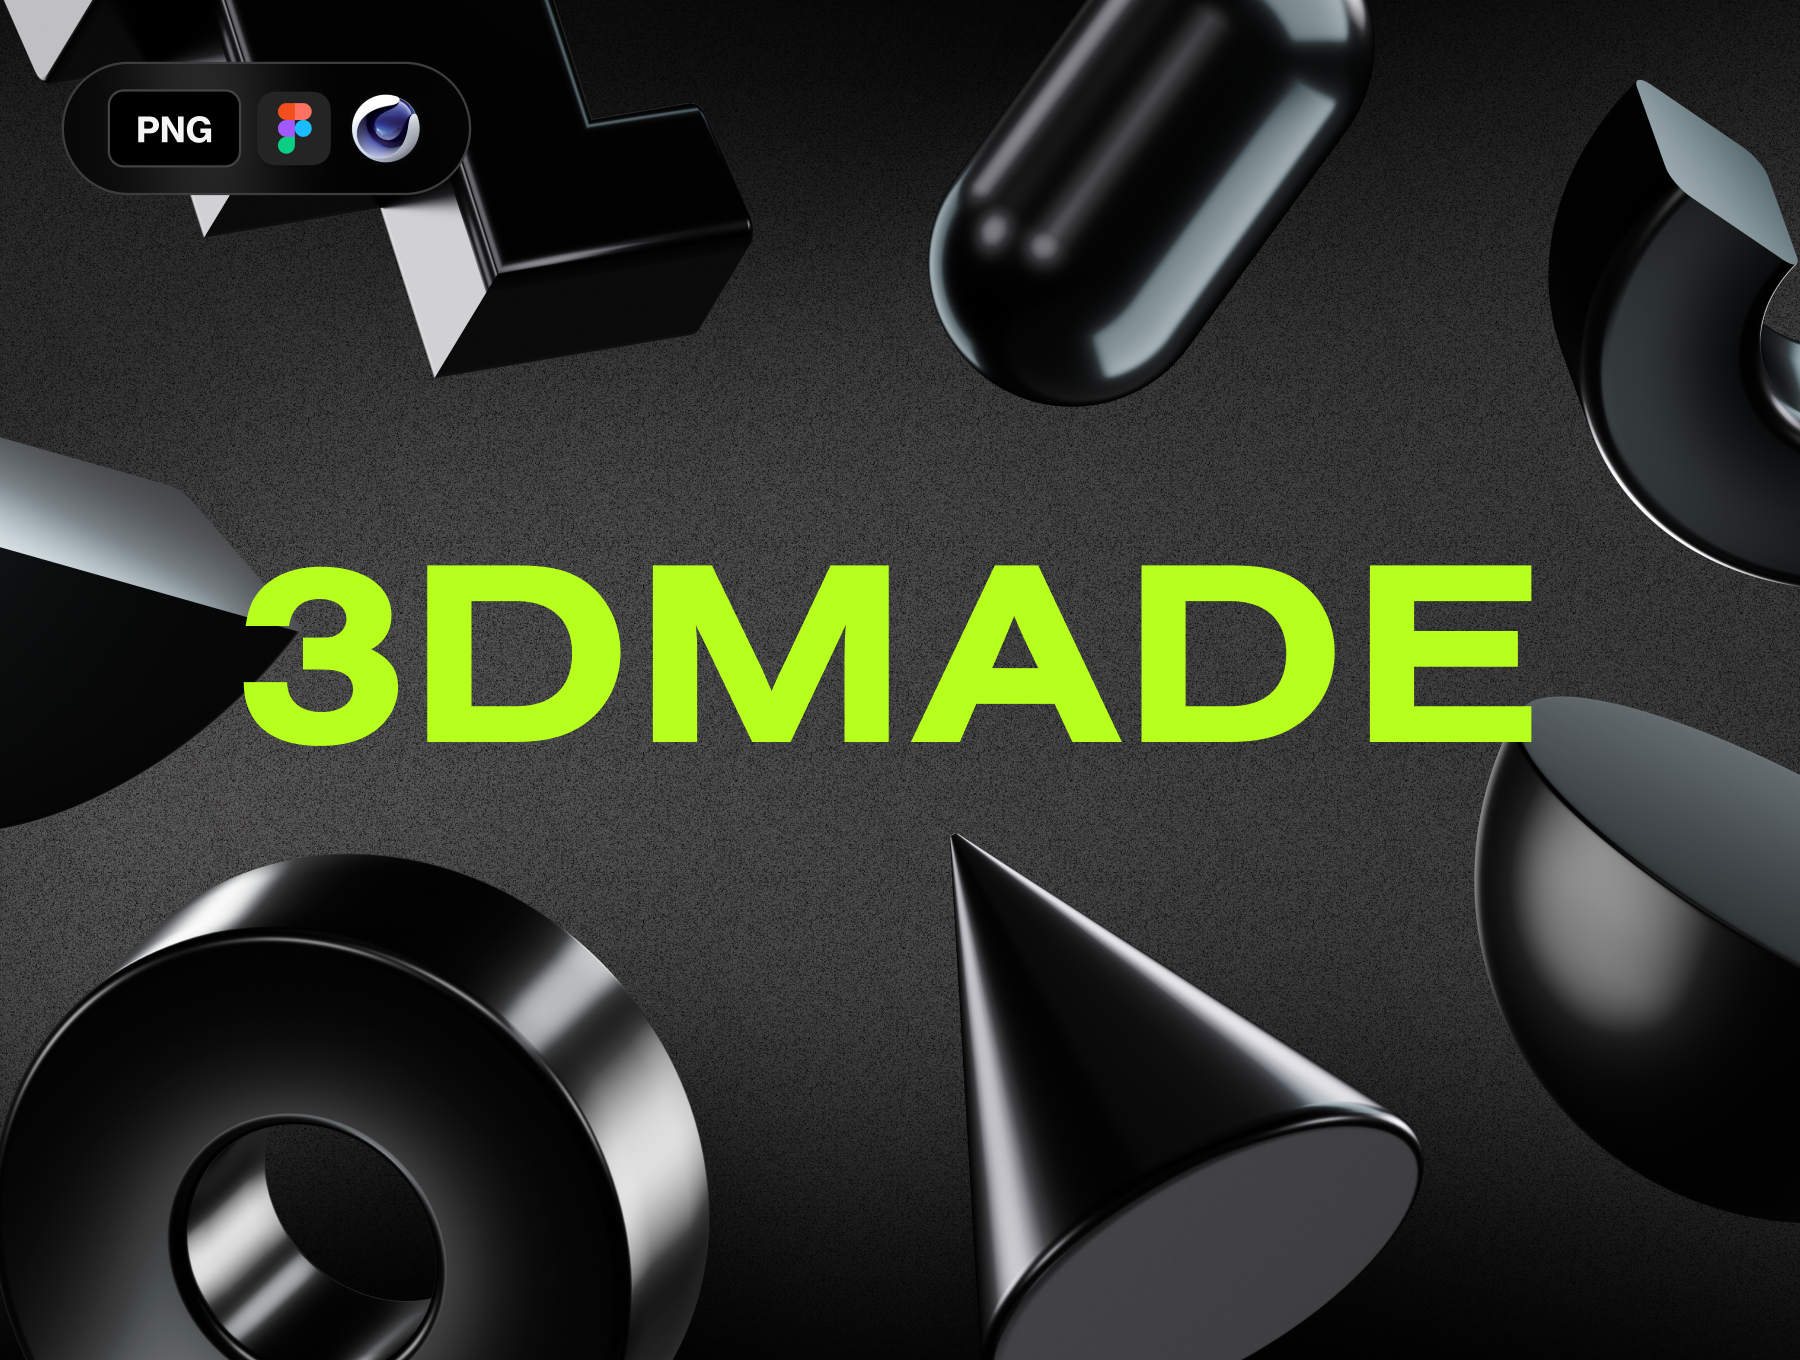 [VIP] 3DMADE - Customisable 3D shapes